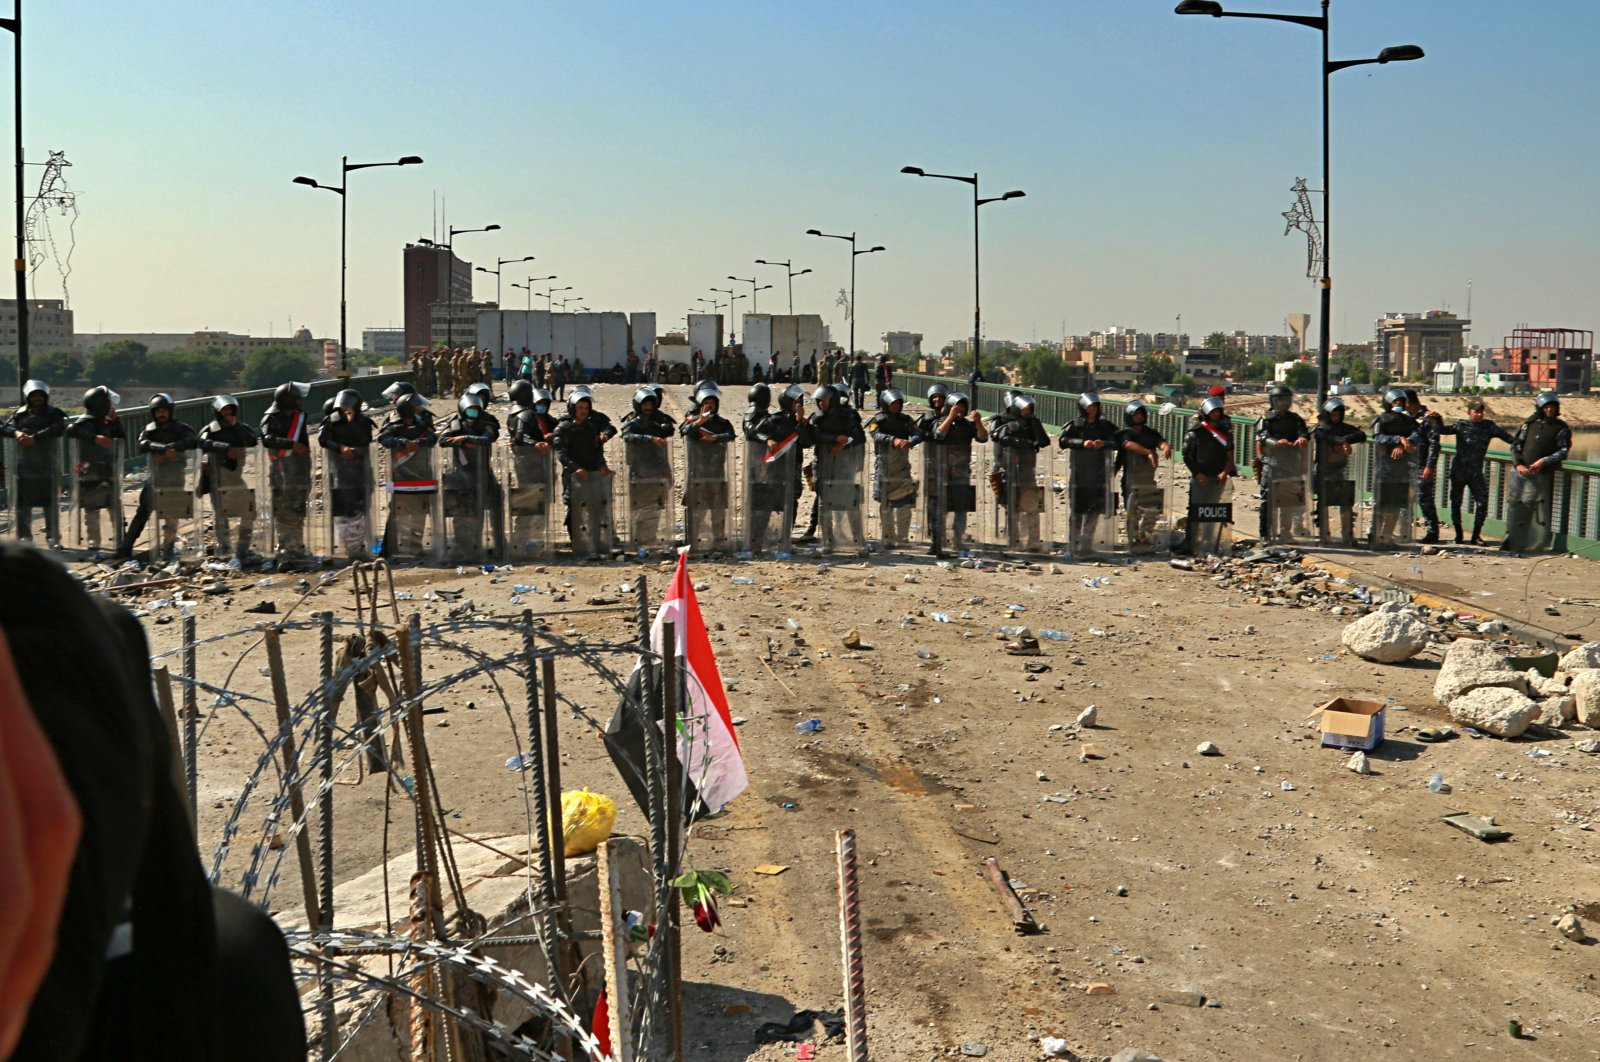 Security forces close the bridge leading to the Green Zone during a demonstration in Baghdad, Oct. 26, 2019. (AP Photo)